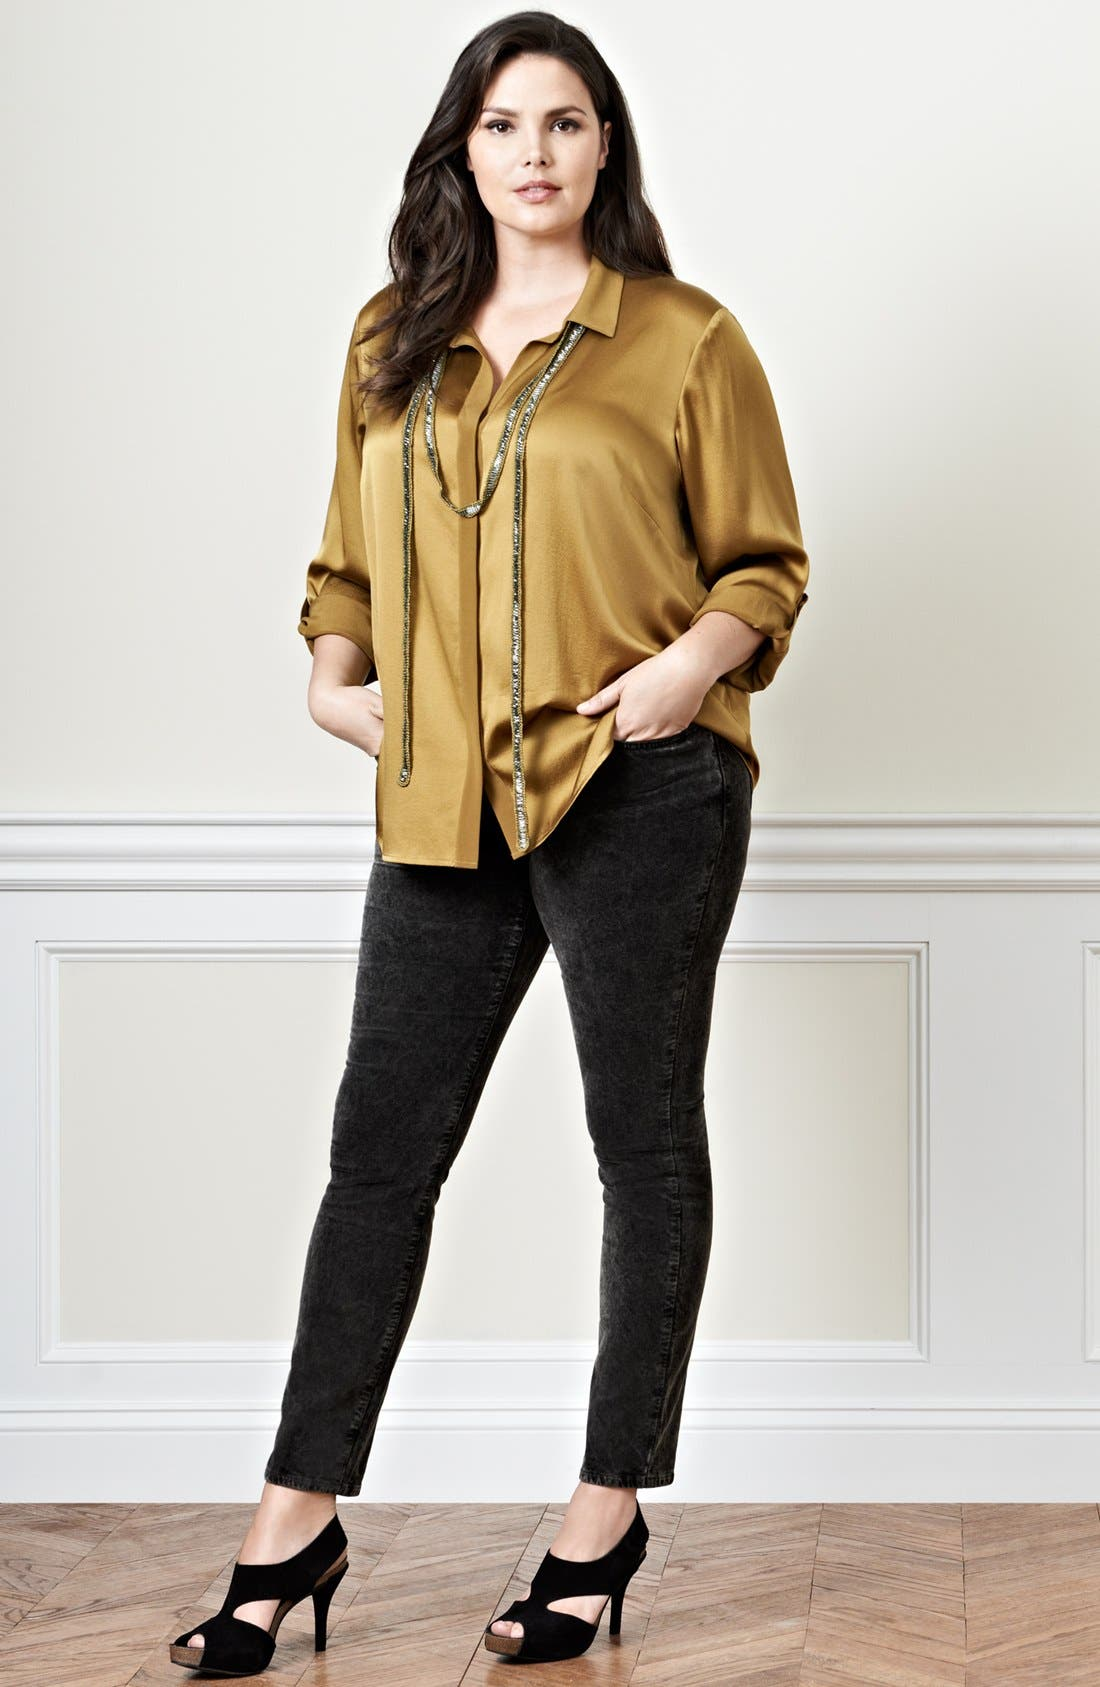 Alternate Image 1 Selected - Eileen Fisher Shirt, Jeans & Accessories